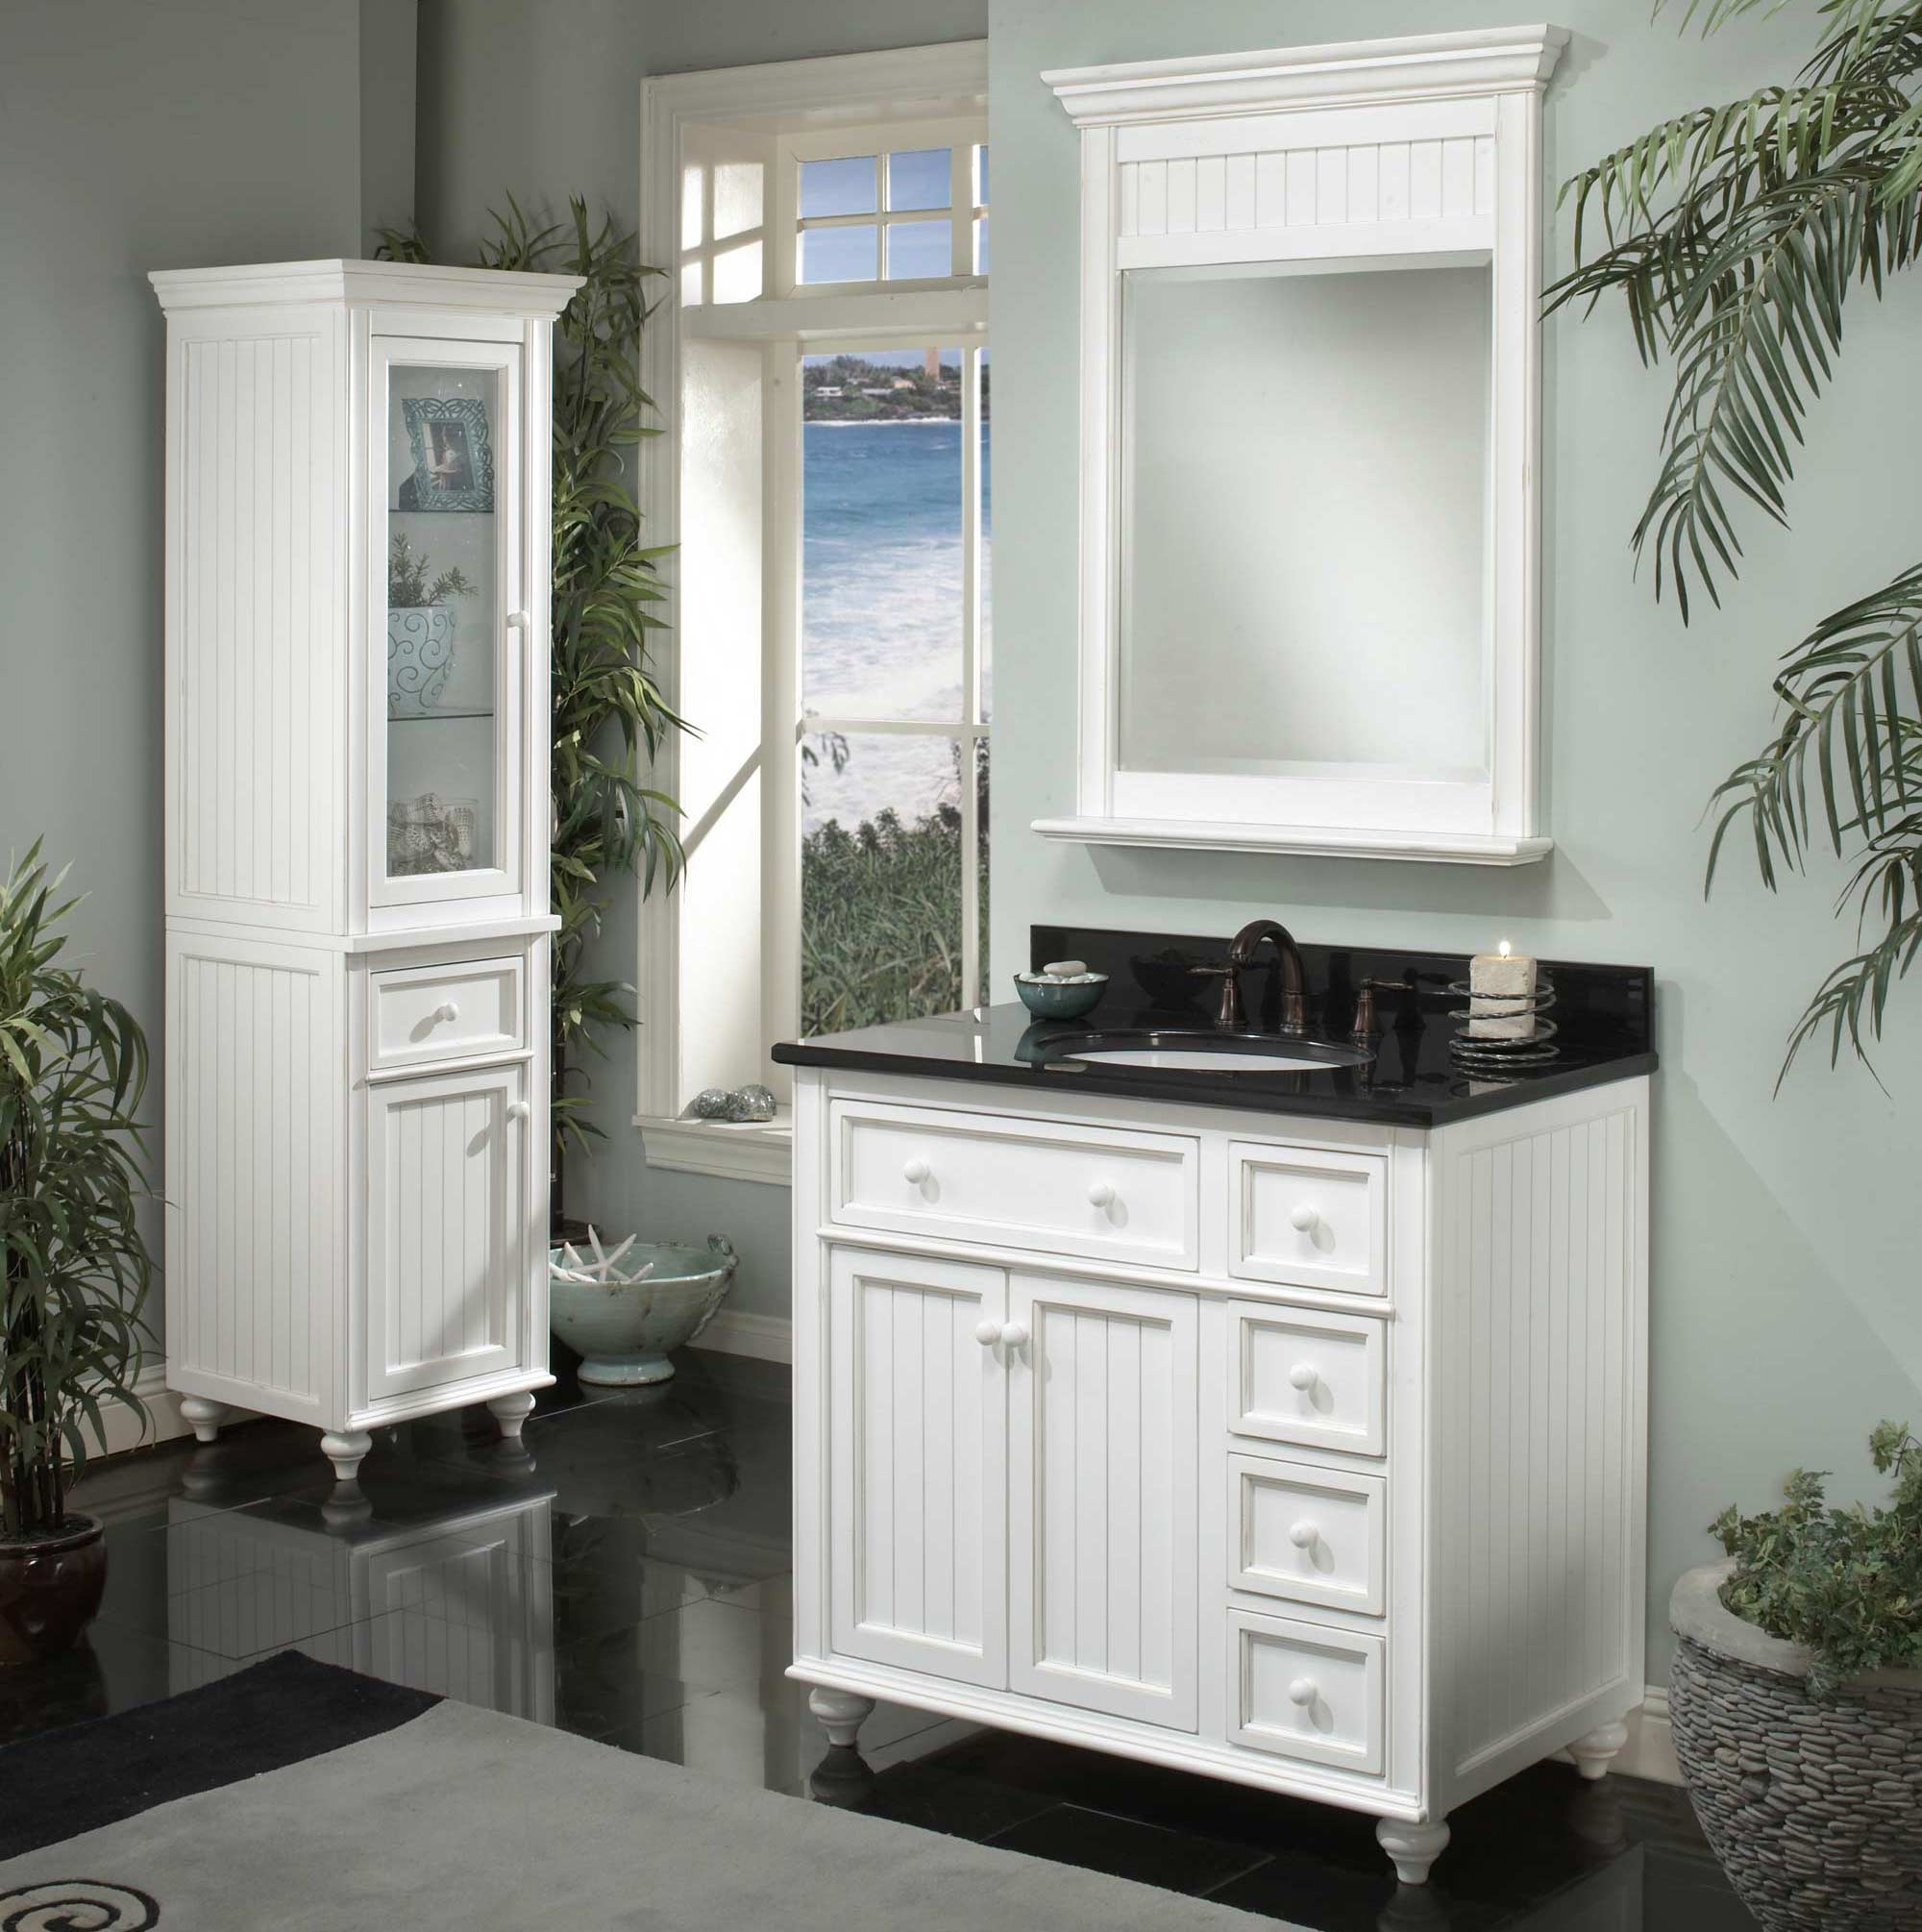 Cr3621d Sagehill Designs Cr3621d White Bayside Cottage Retreat 36 Inch Bathroom Vanity Cabinet